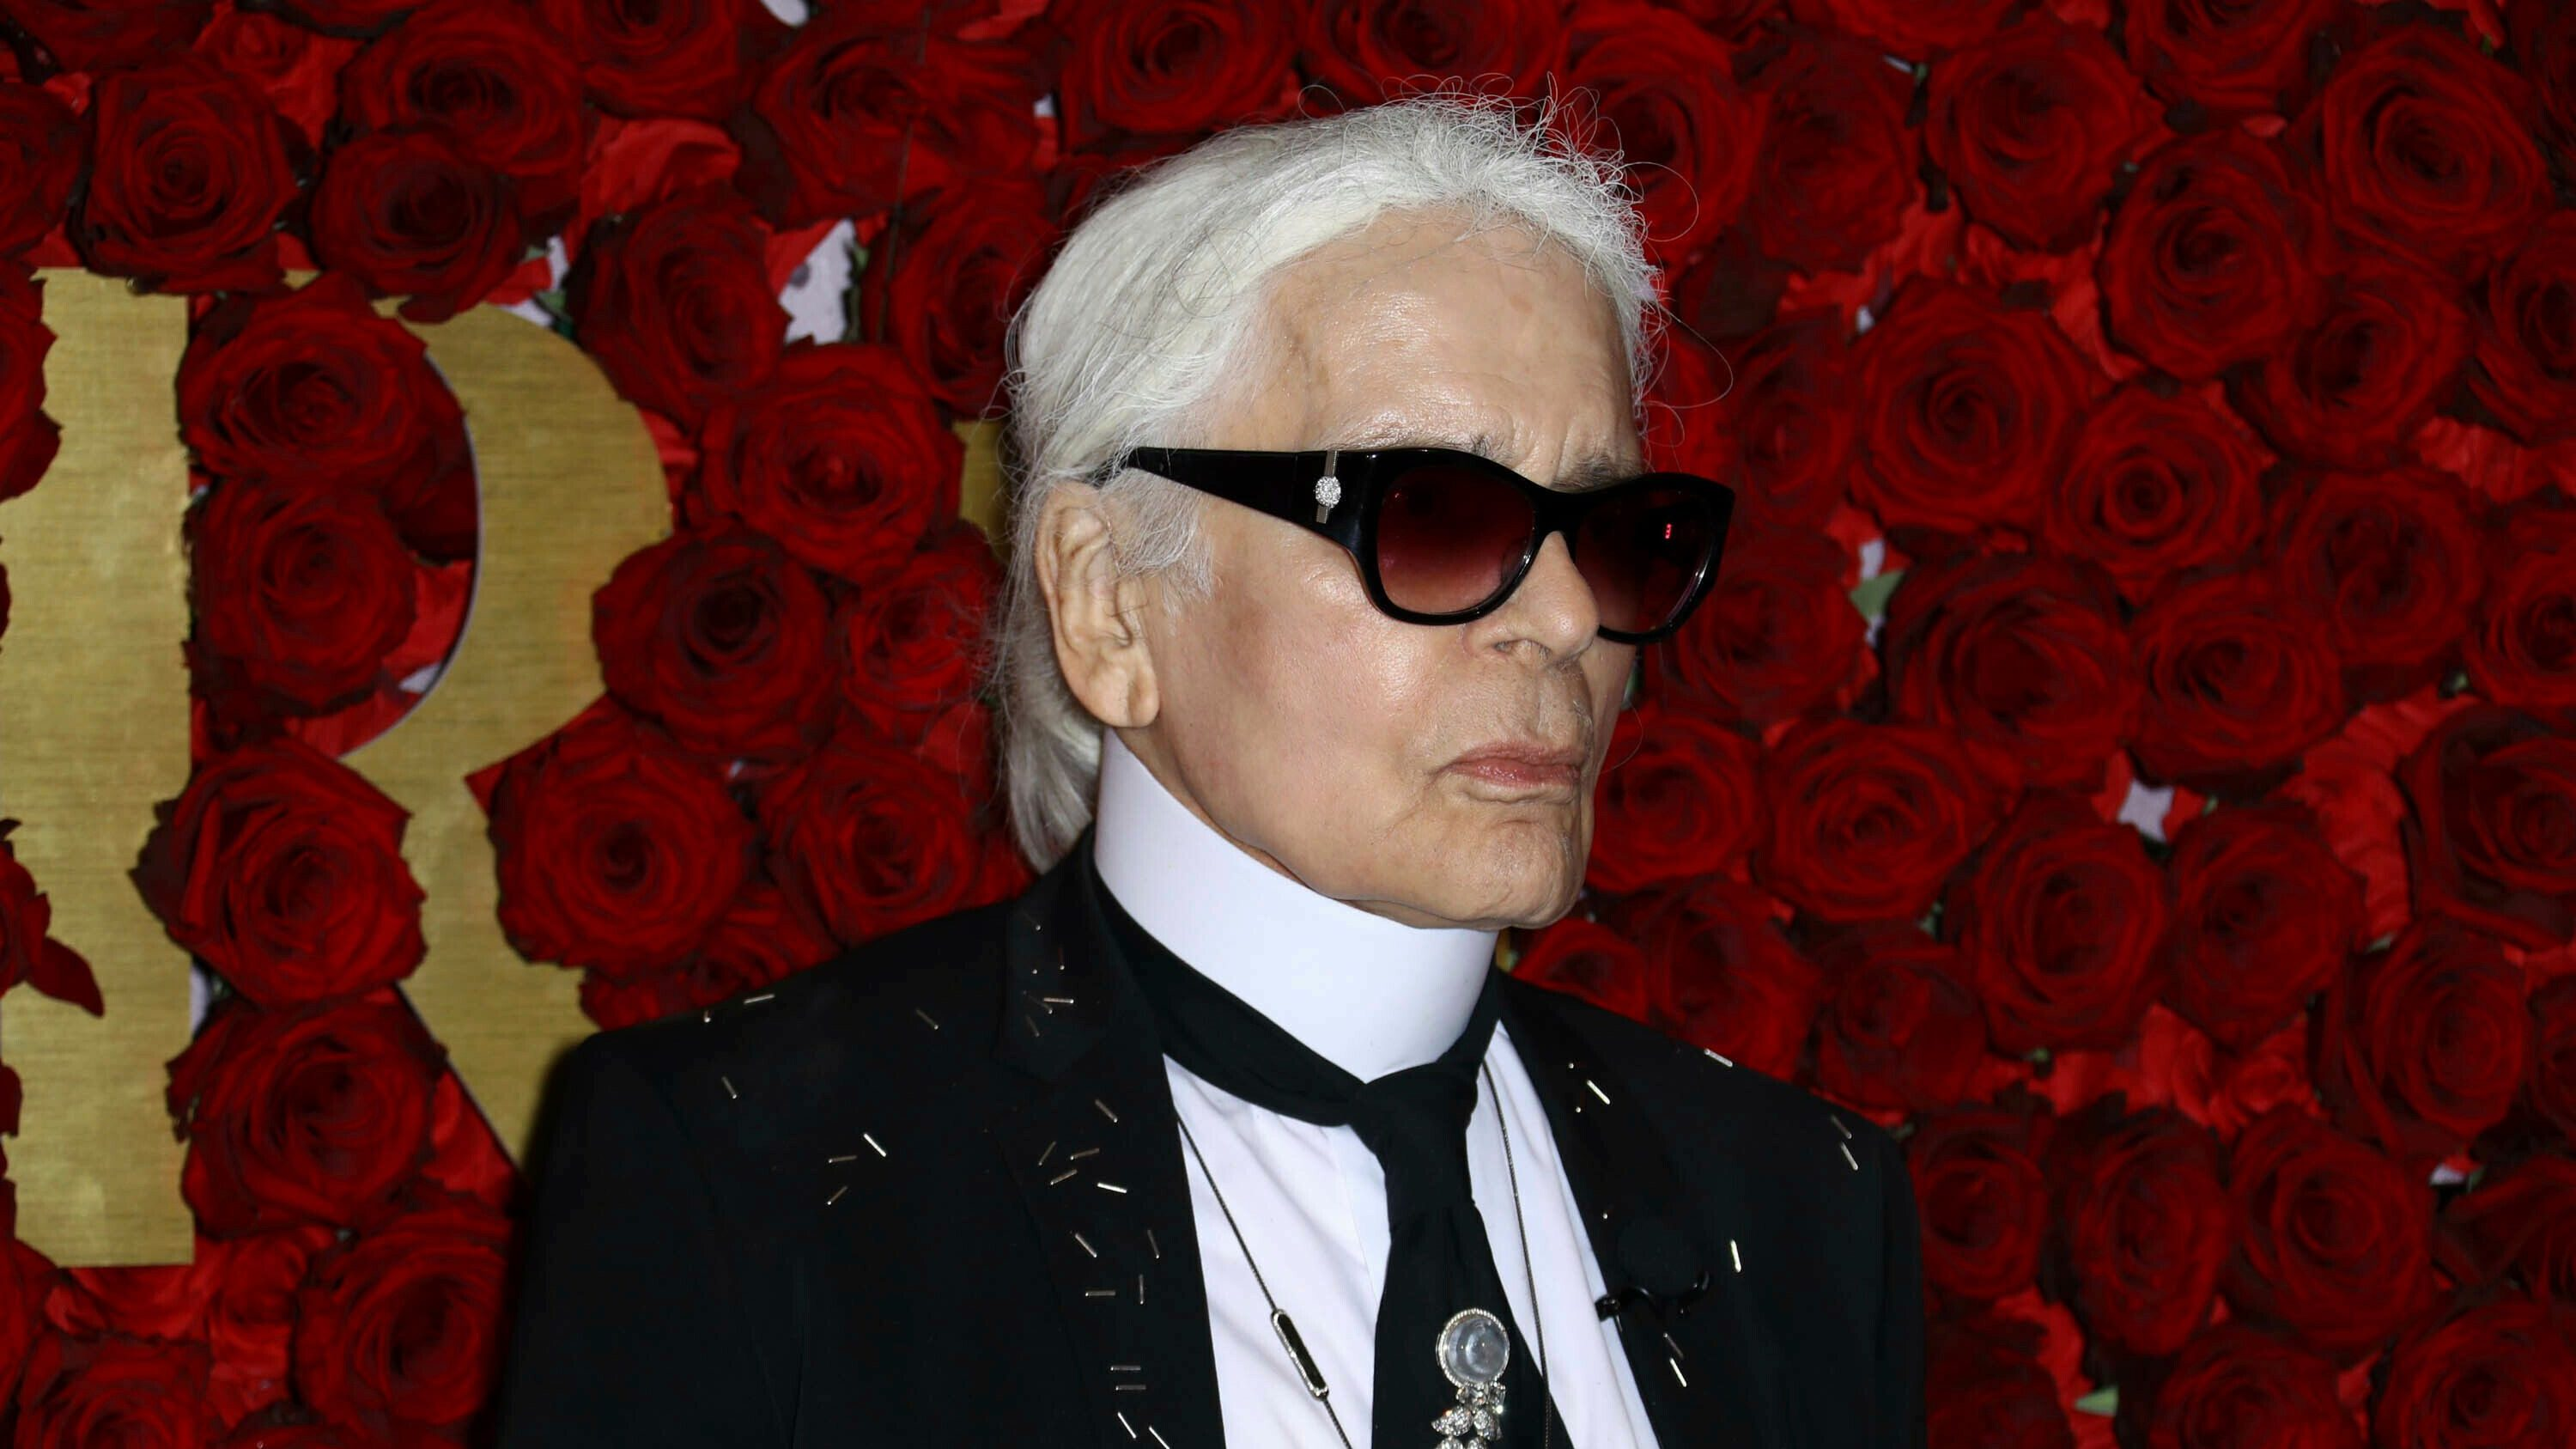 e2bf5e20da7d Karl Lagerfeld s death makes us ask  How should we mourn problematic people